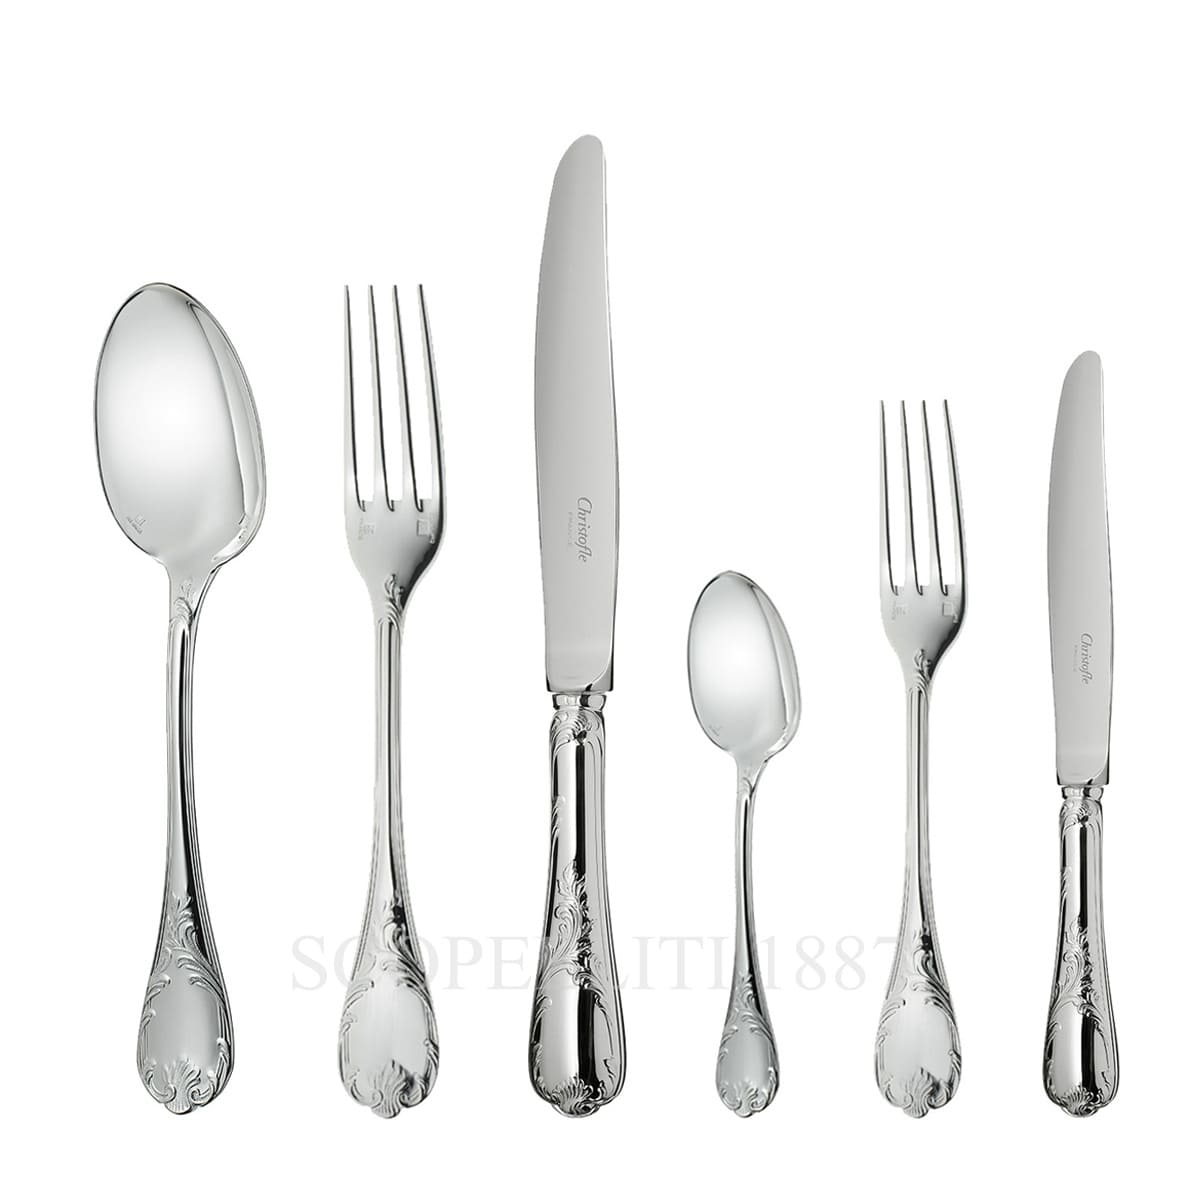 christofle flatware marly